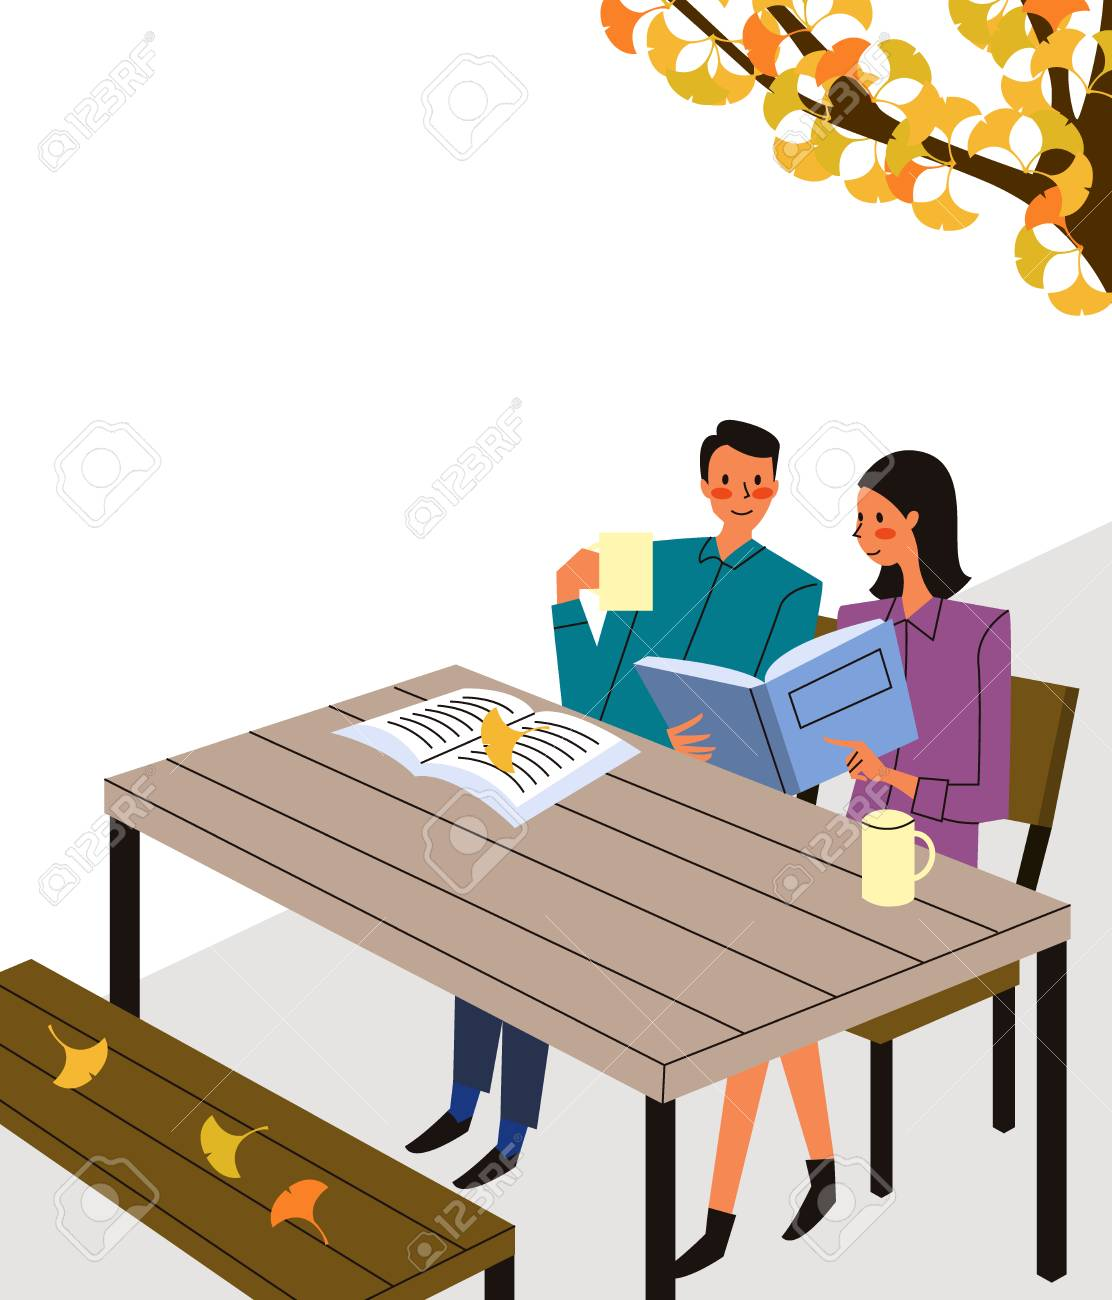 Couple reading book in outdoor cafe, vector illustration. - 90833488